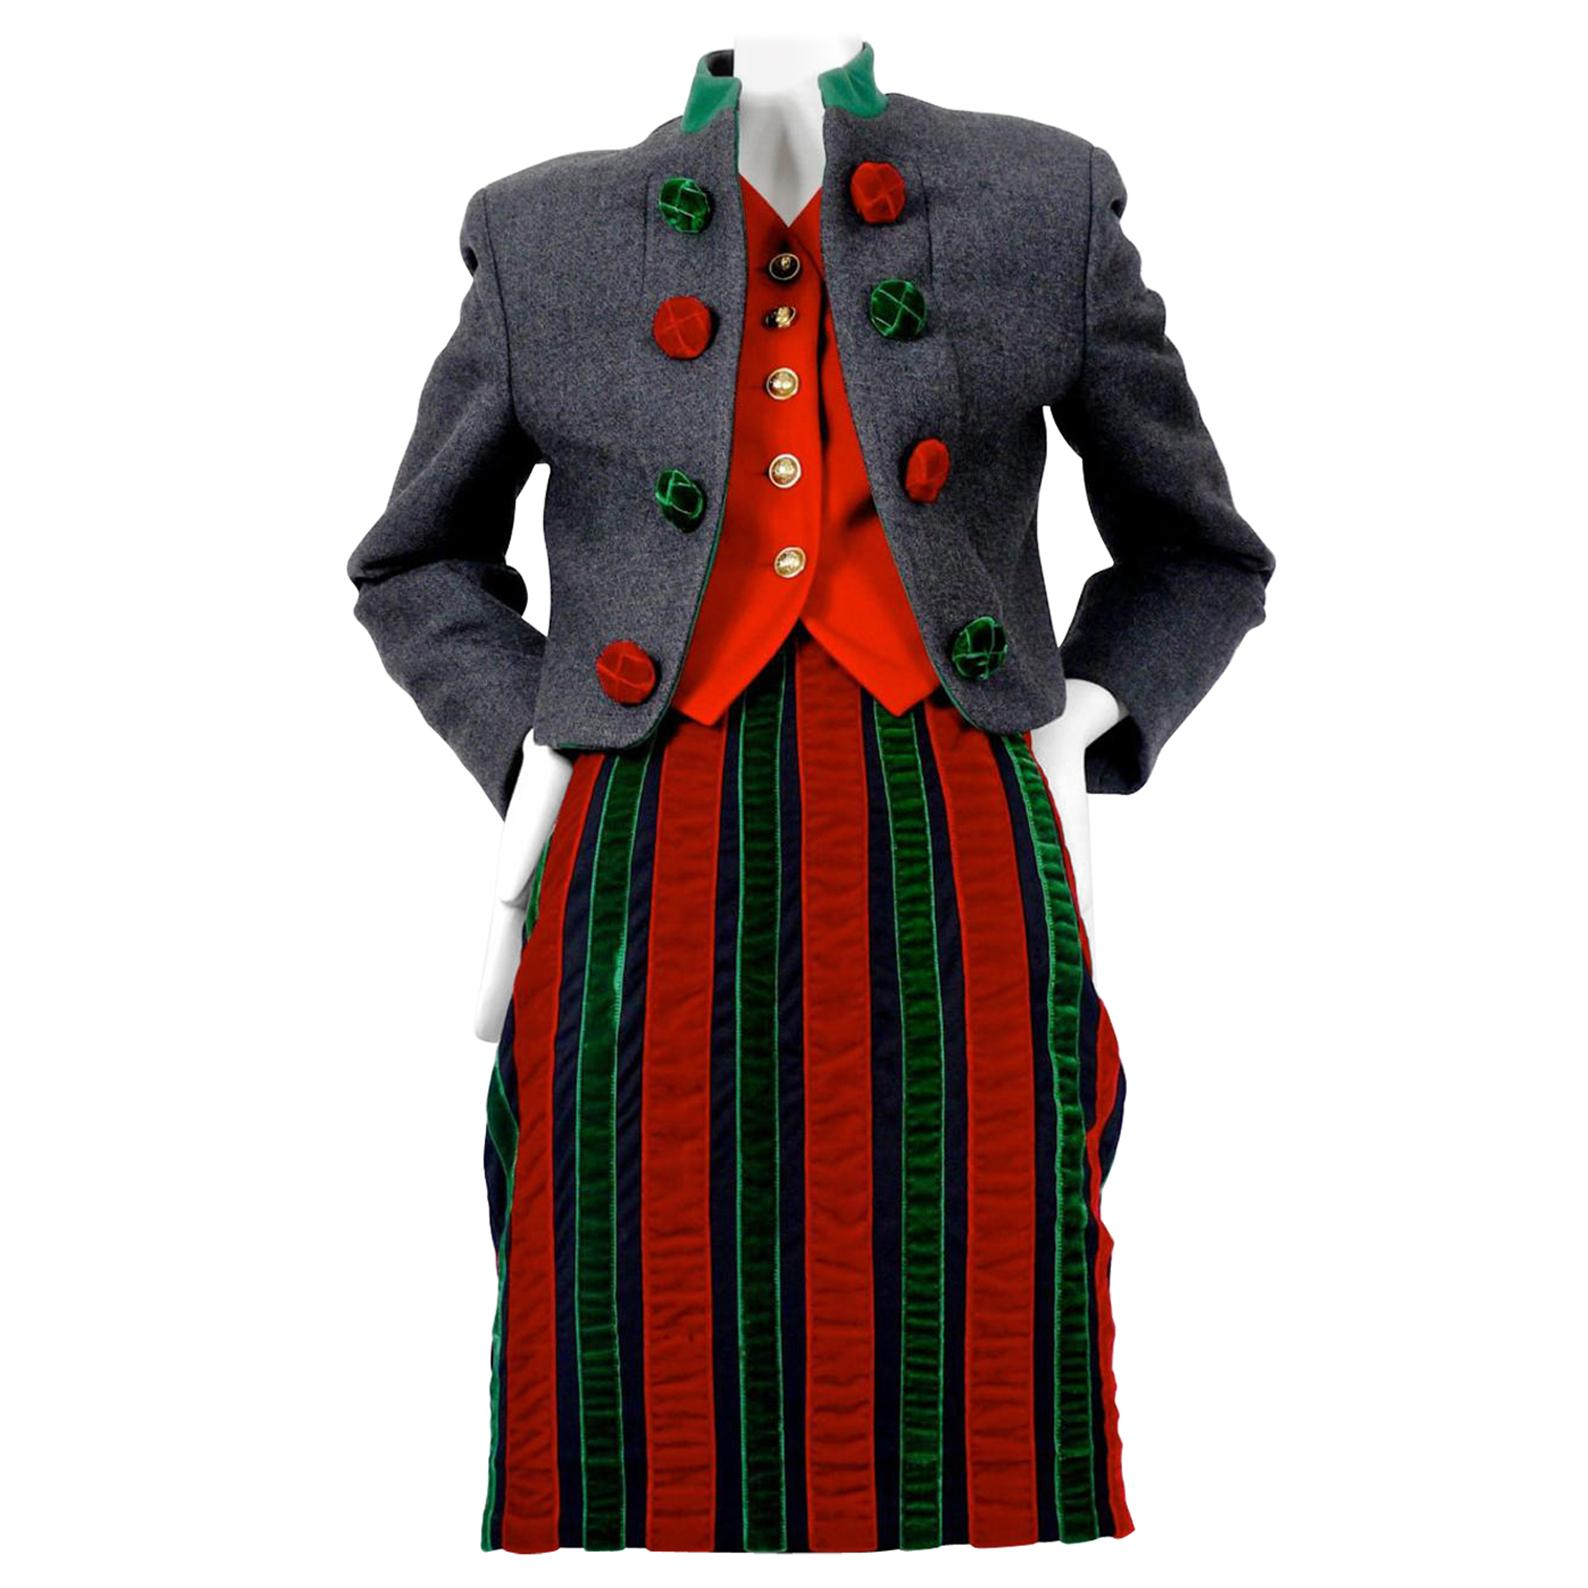 Vintage MOSCHINO Quirky Christmas Velvet Skirt Jacket Suit